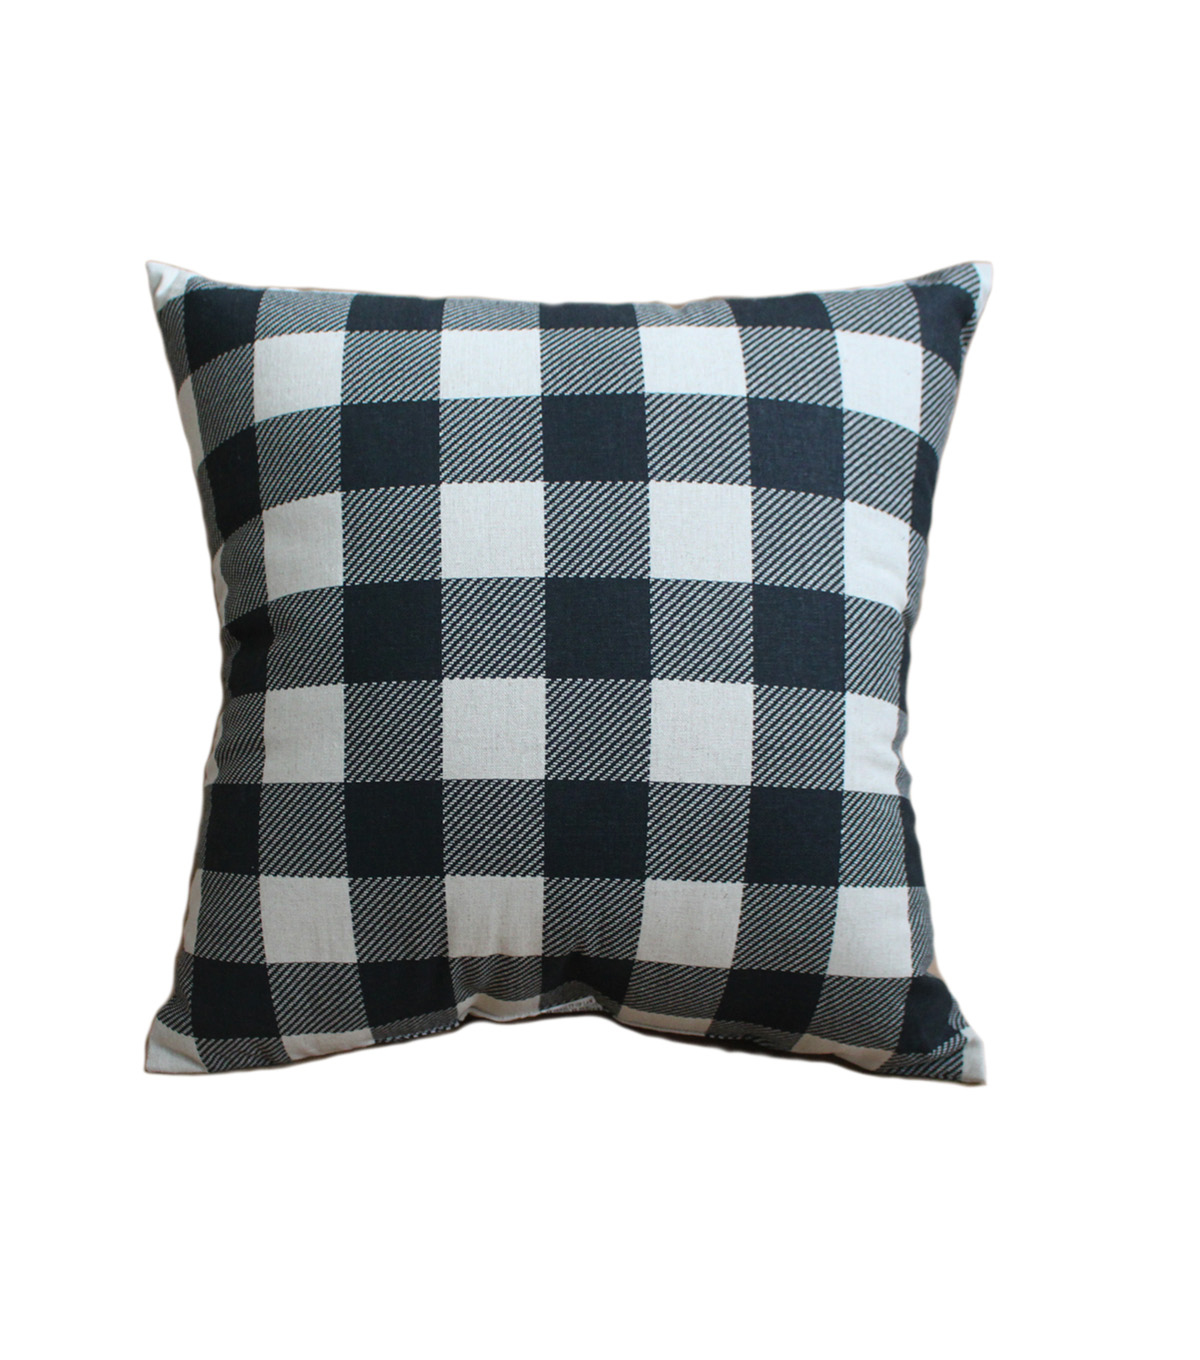 Hudson 43 Farm 18\u0027\u0027x18\u0027\u0027 Pillow-Black Checks